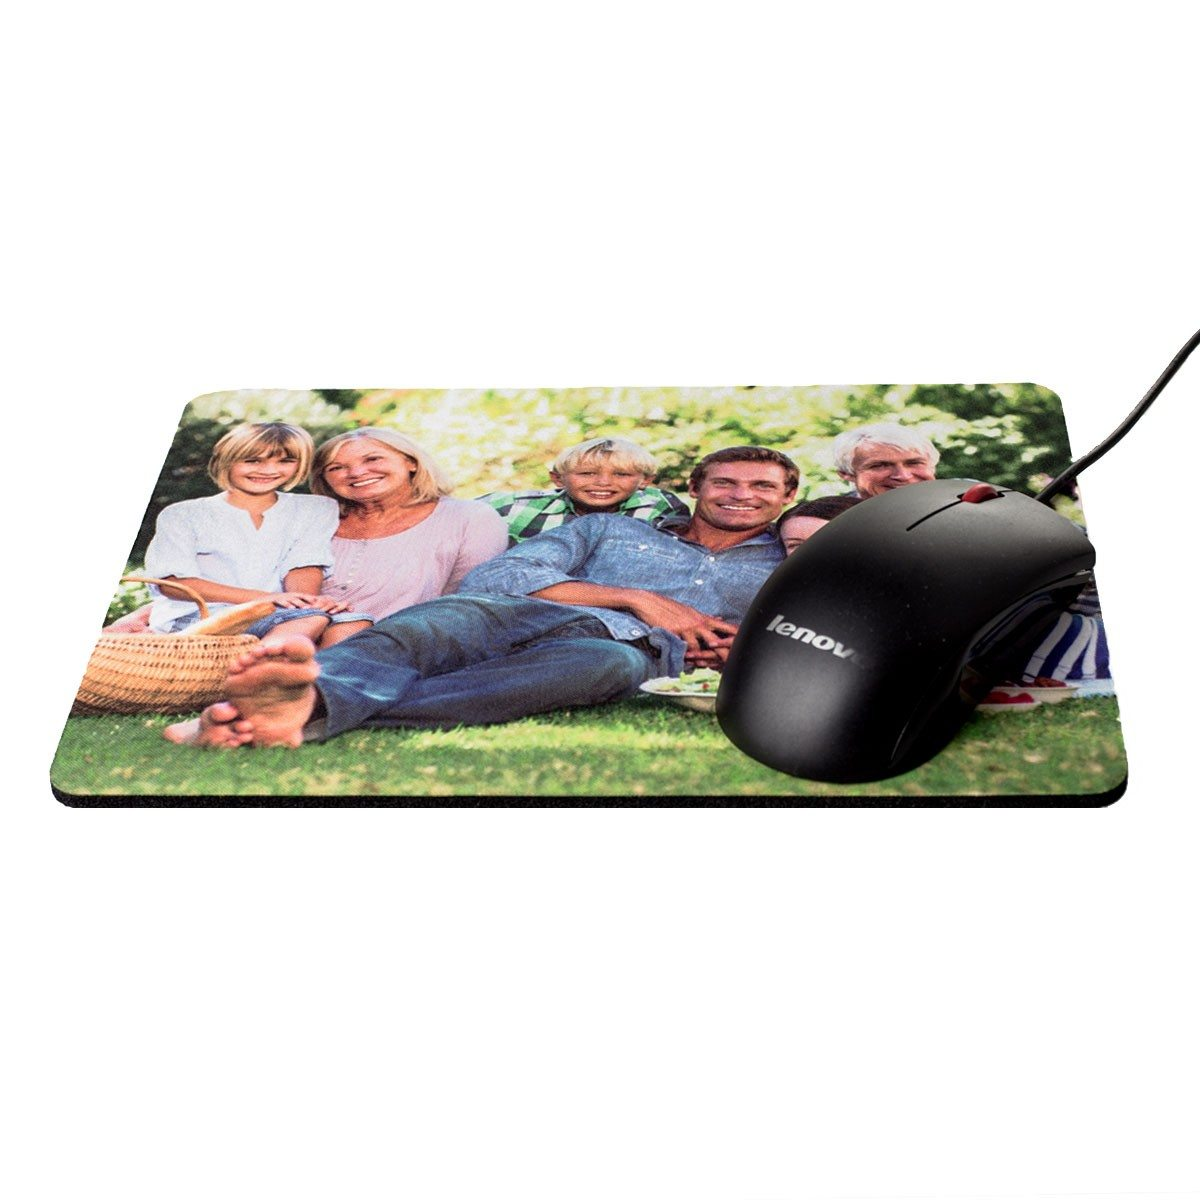 Tapis de souris rectangle - photo personnalisée